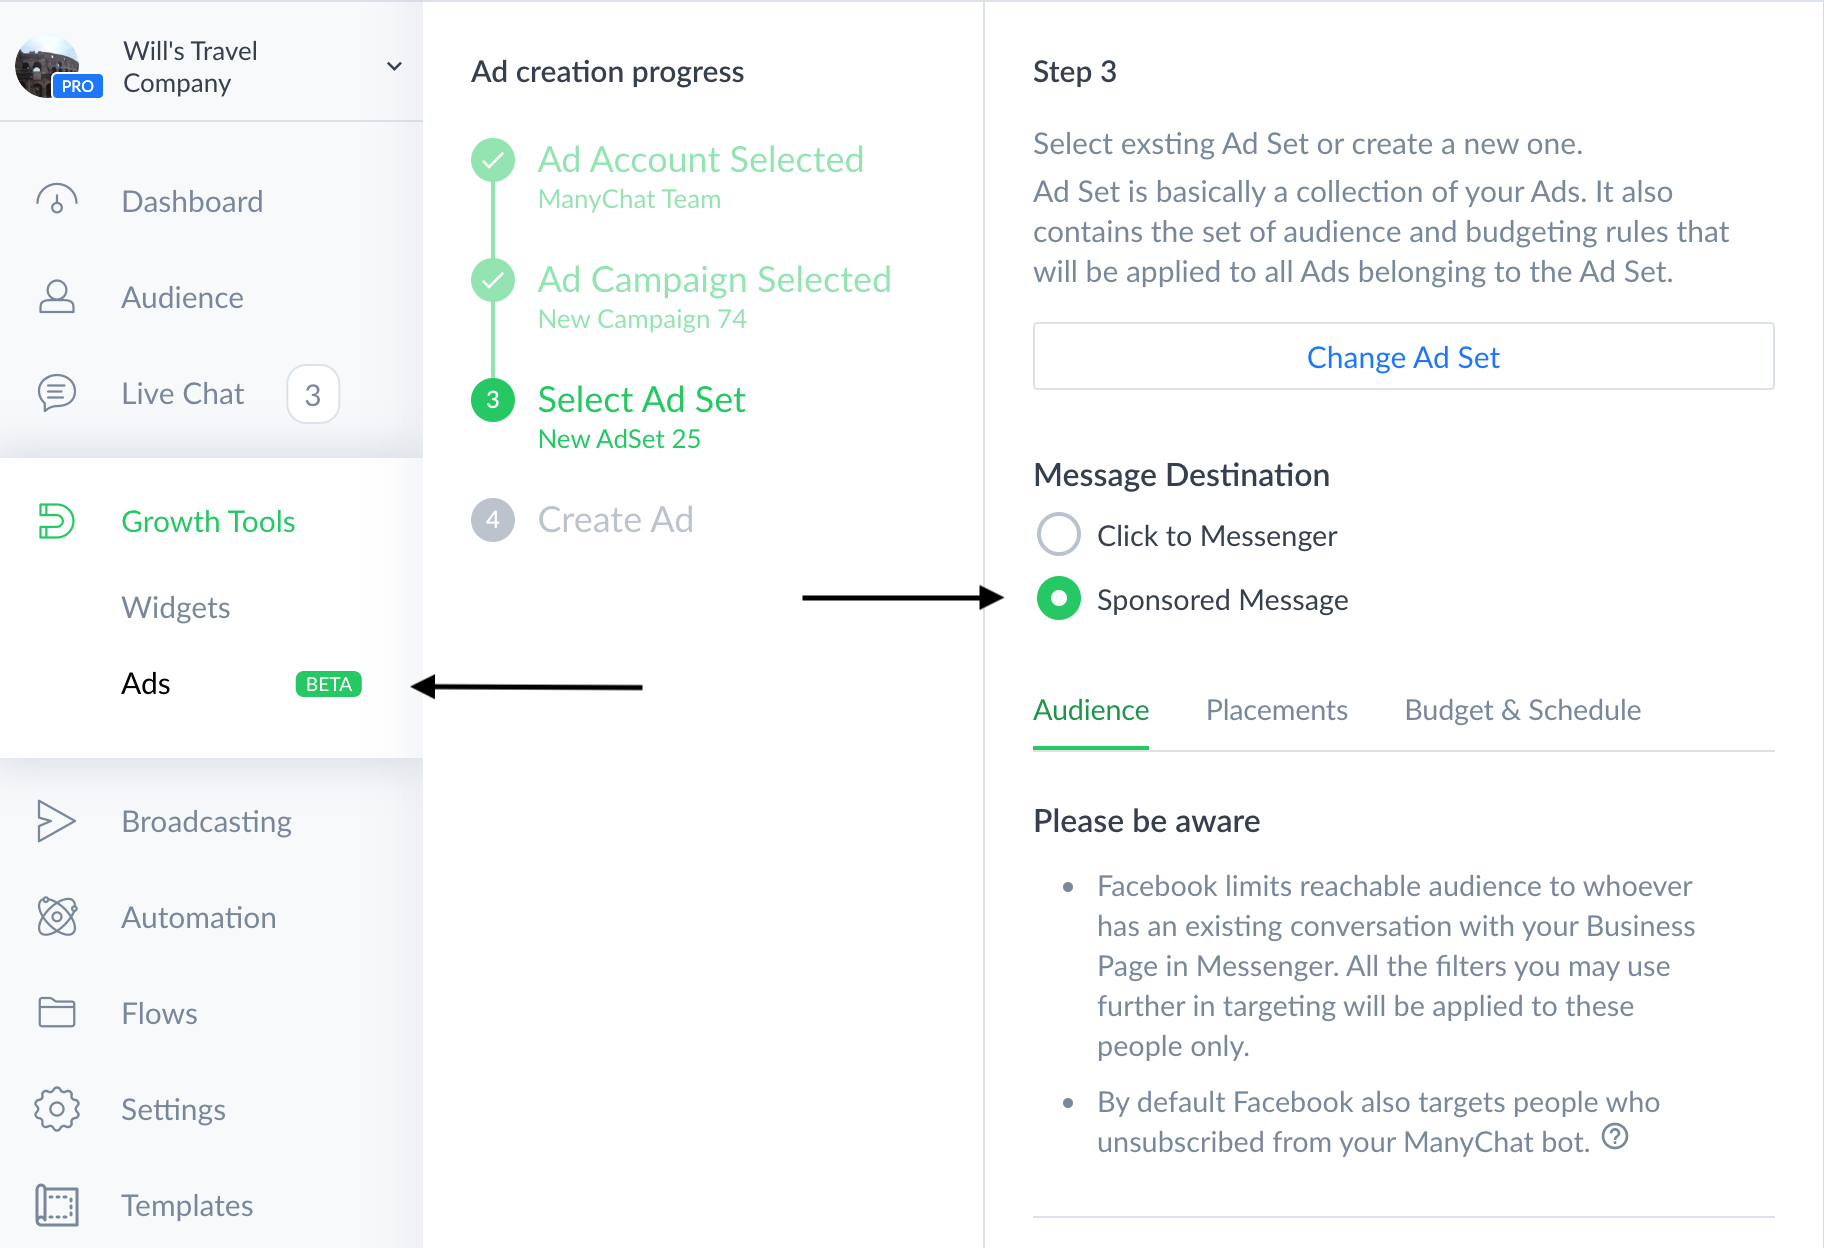 This images shows how you can build sponsored messages right inside ManyChat